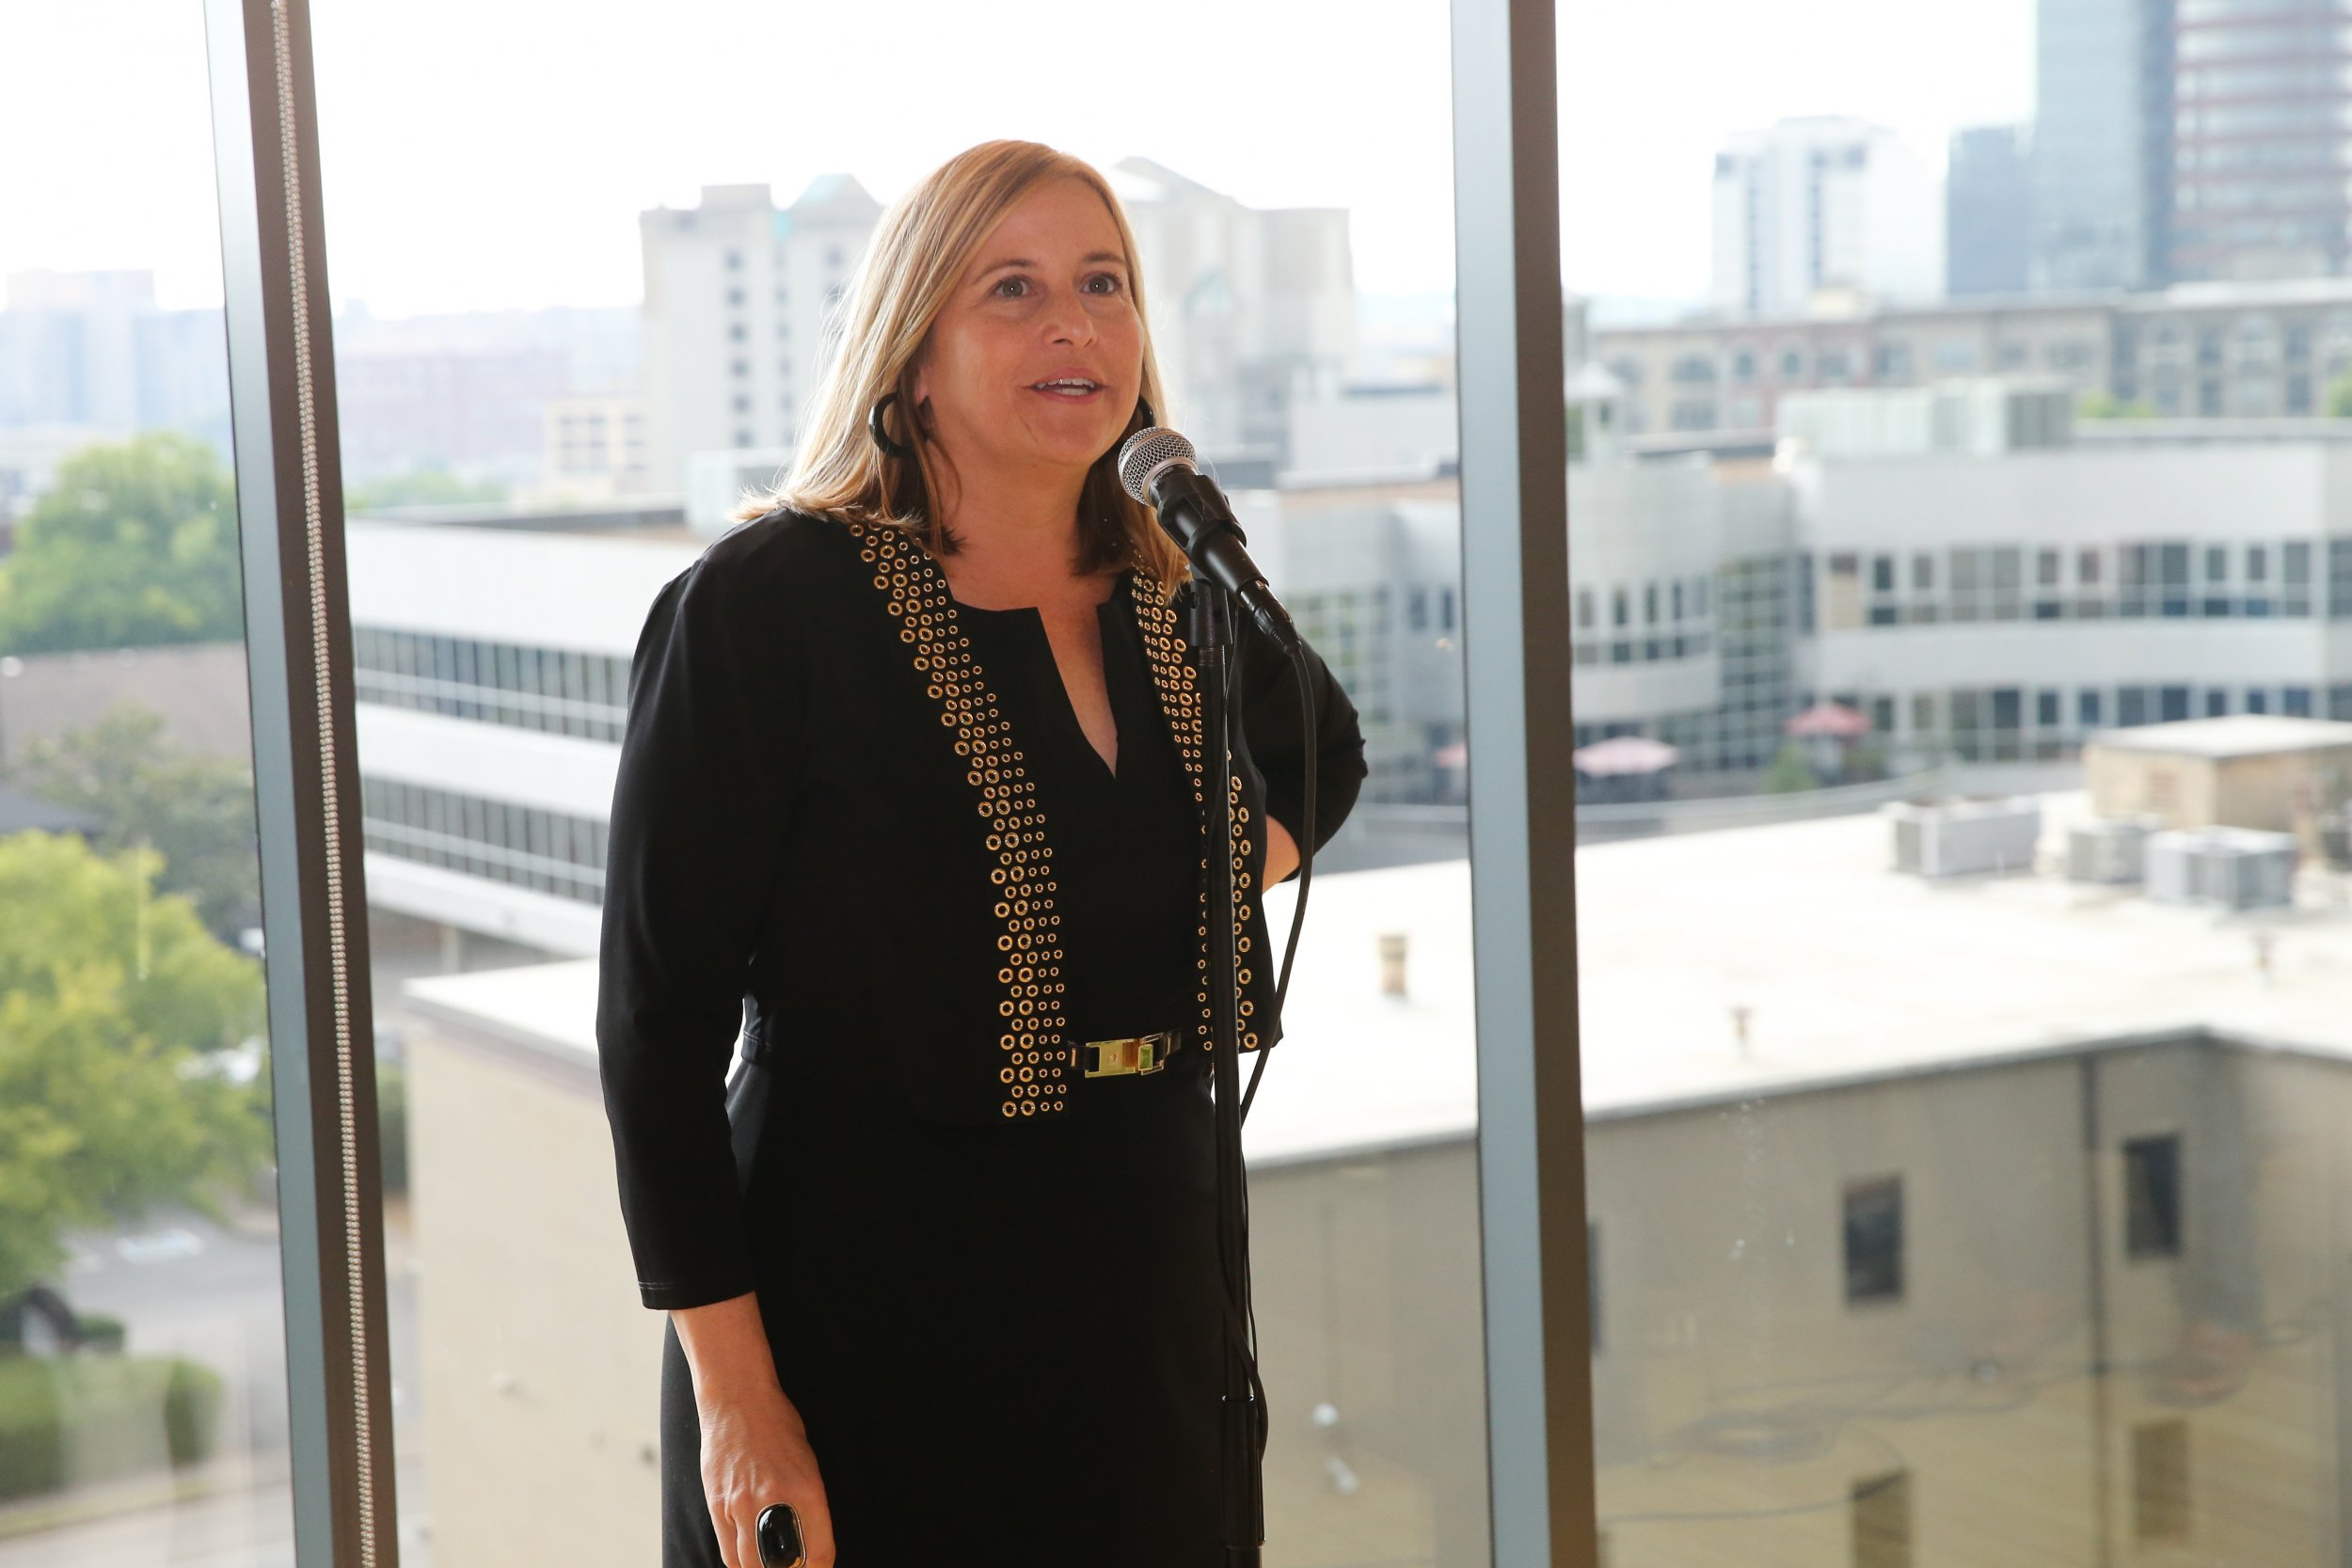 Nashville Mayor Megan Barry Resigns Pleads Guilty To Felony Theft After Affair With Her Bodyguard